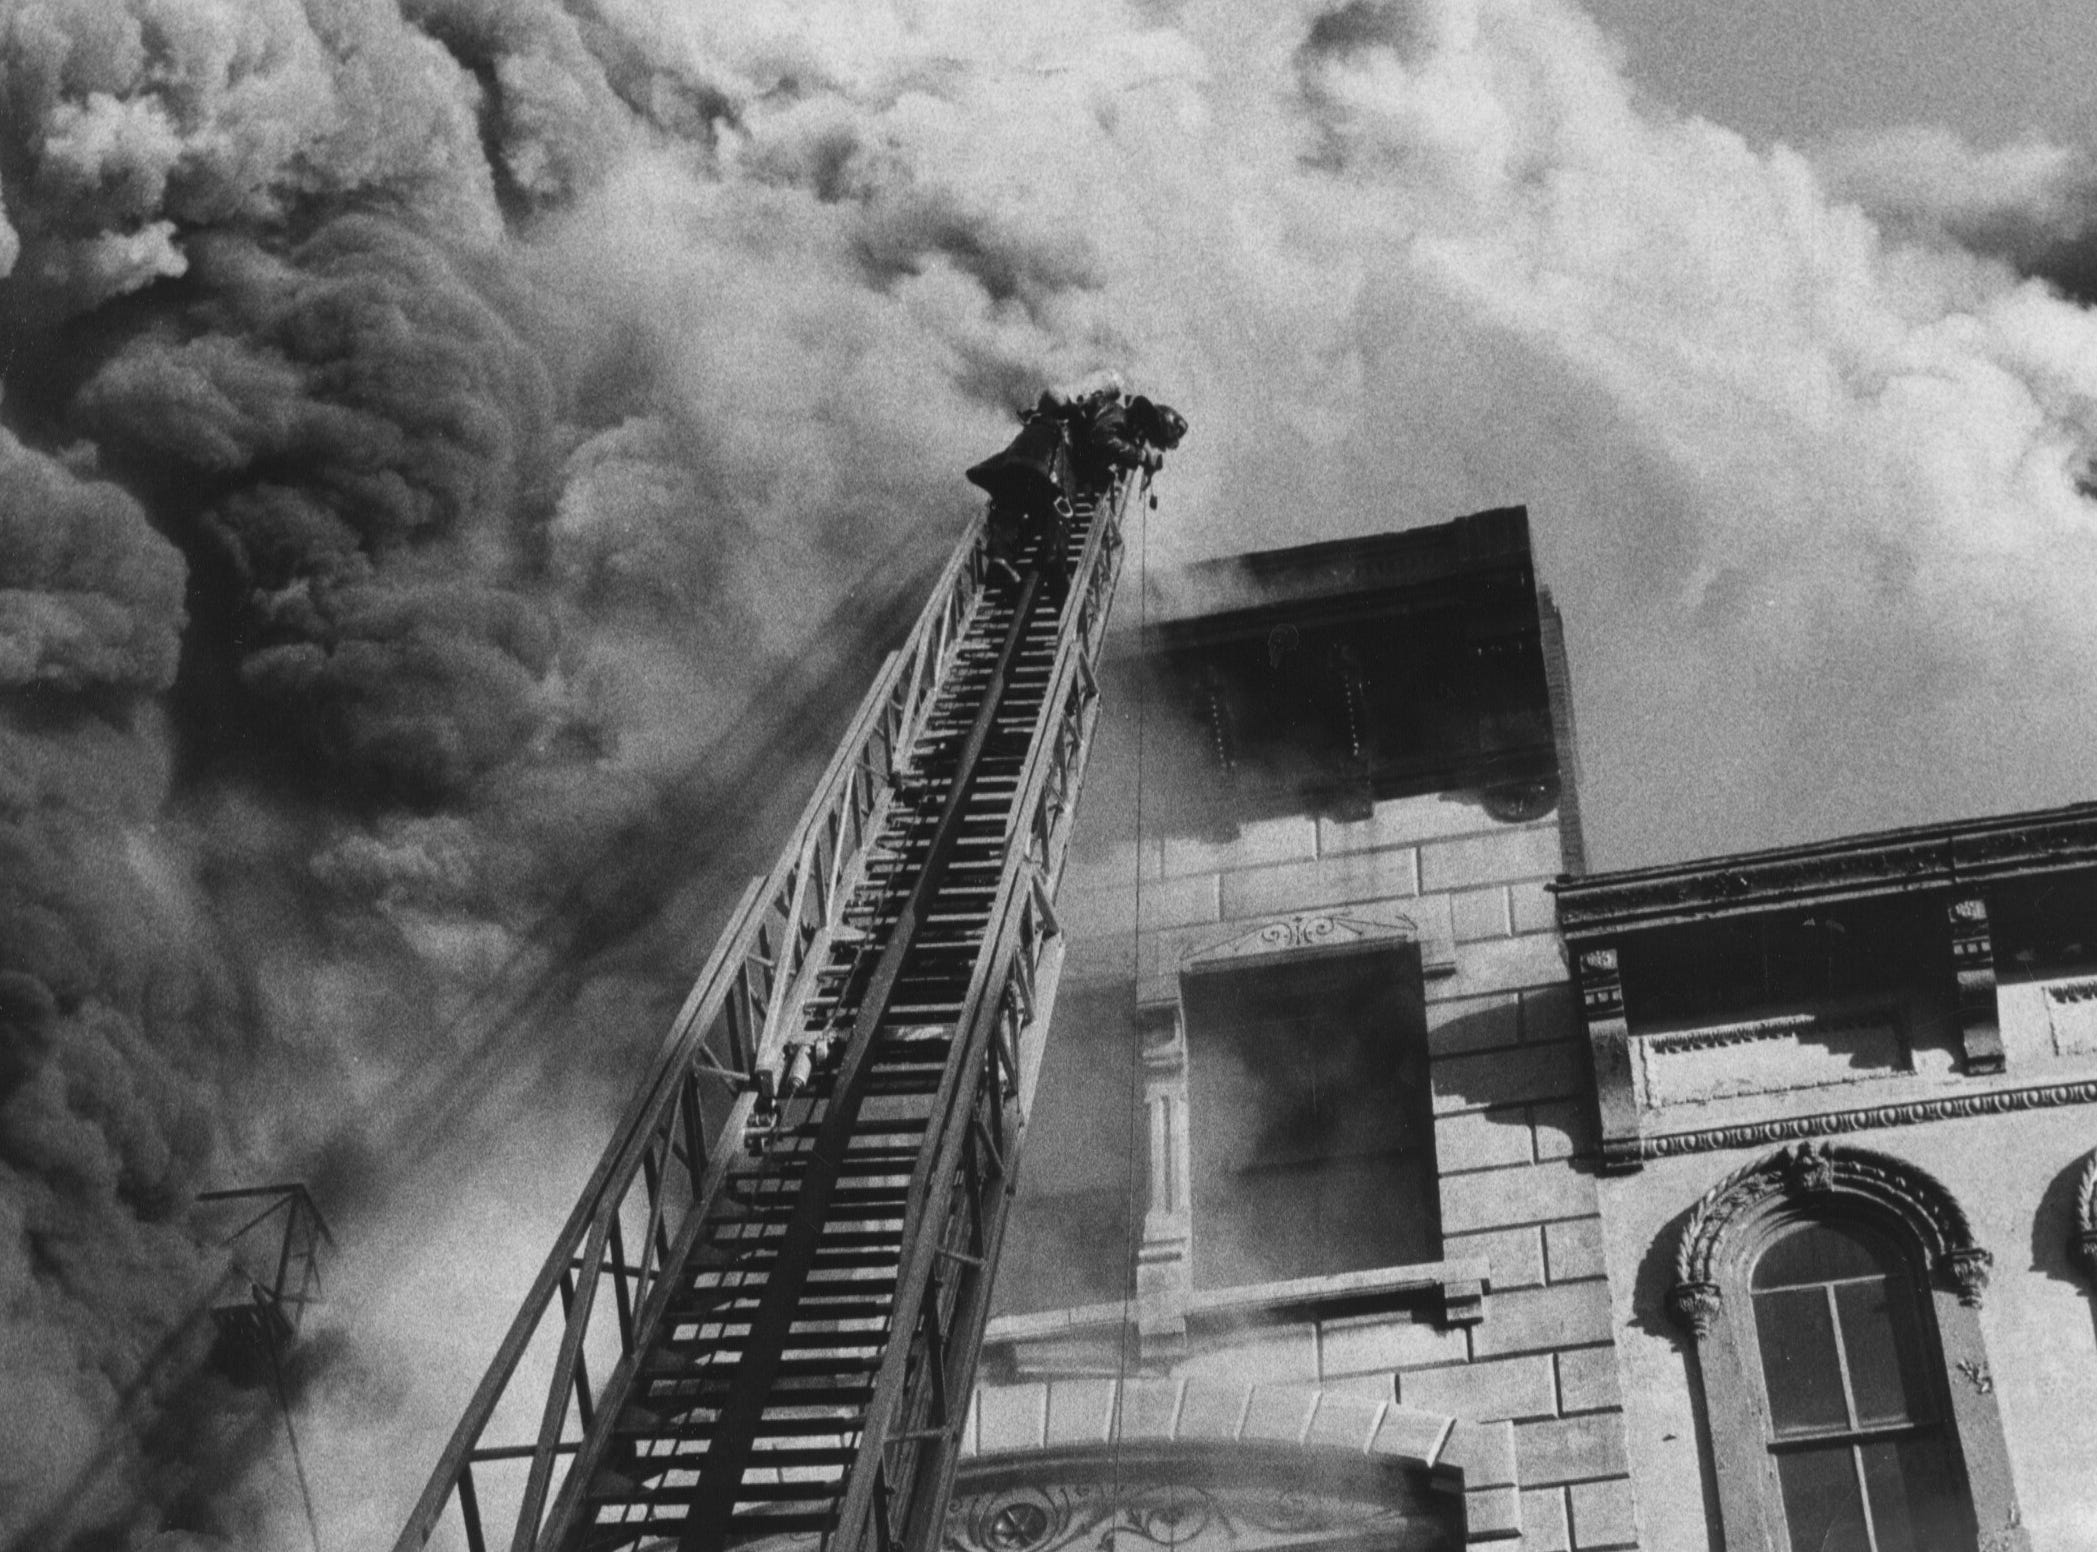 Firemen answered a three-alarm call this morning to stop a fire in the 600 block of W. Main Street which left at least one person dead and several injured. 